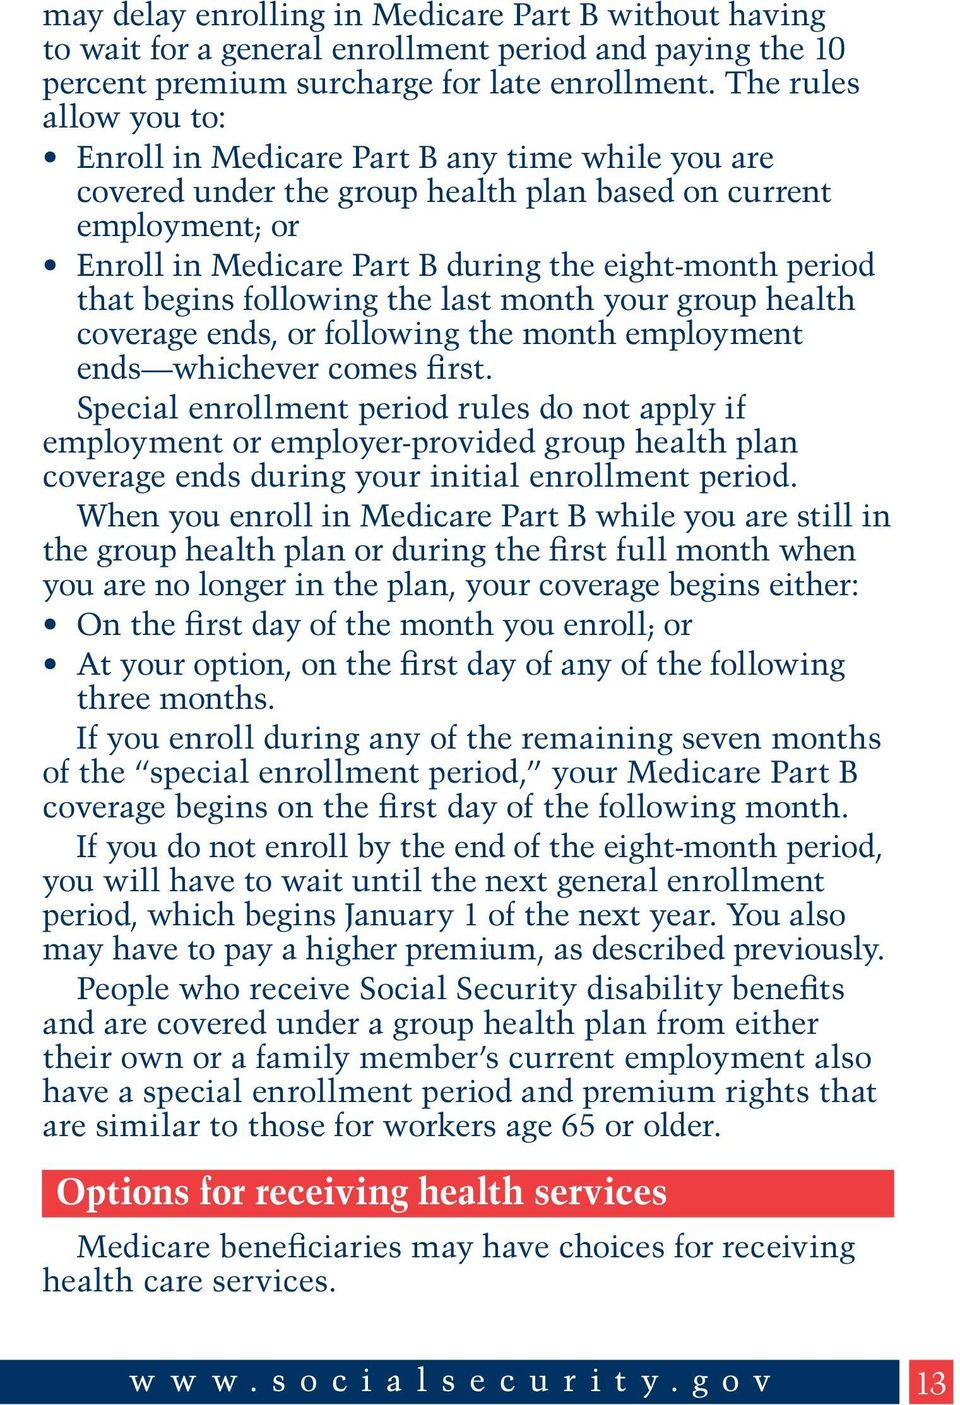 that begins following the last month your group health coverage ends, or following the month employment ends whichever comes first.